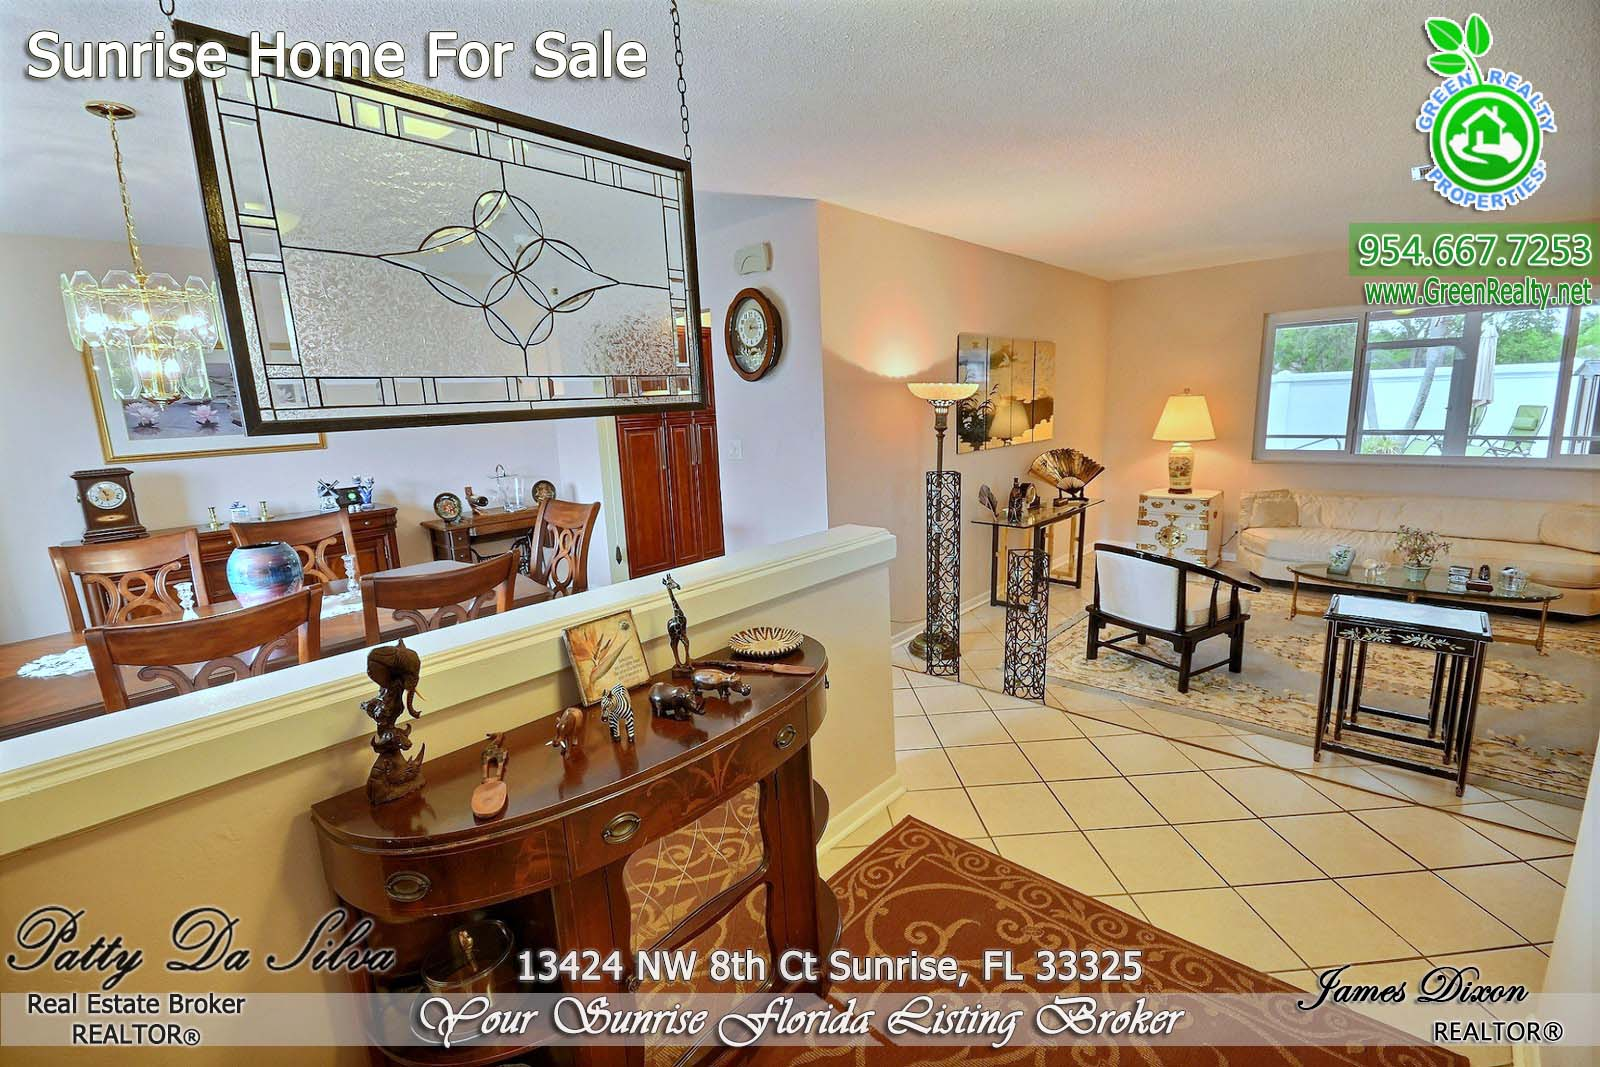 3 Sunrise Florida Homes For Sale (2)